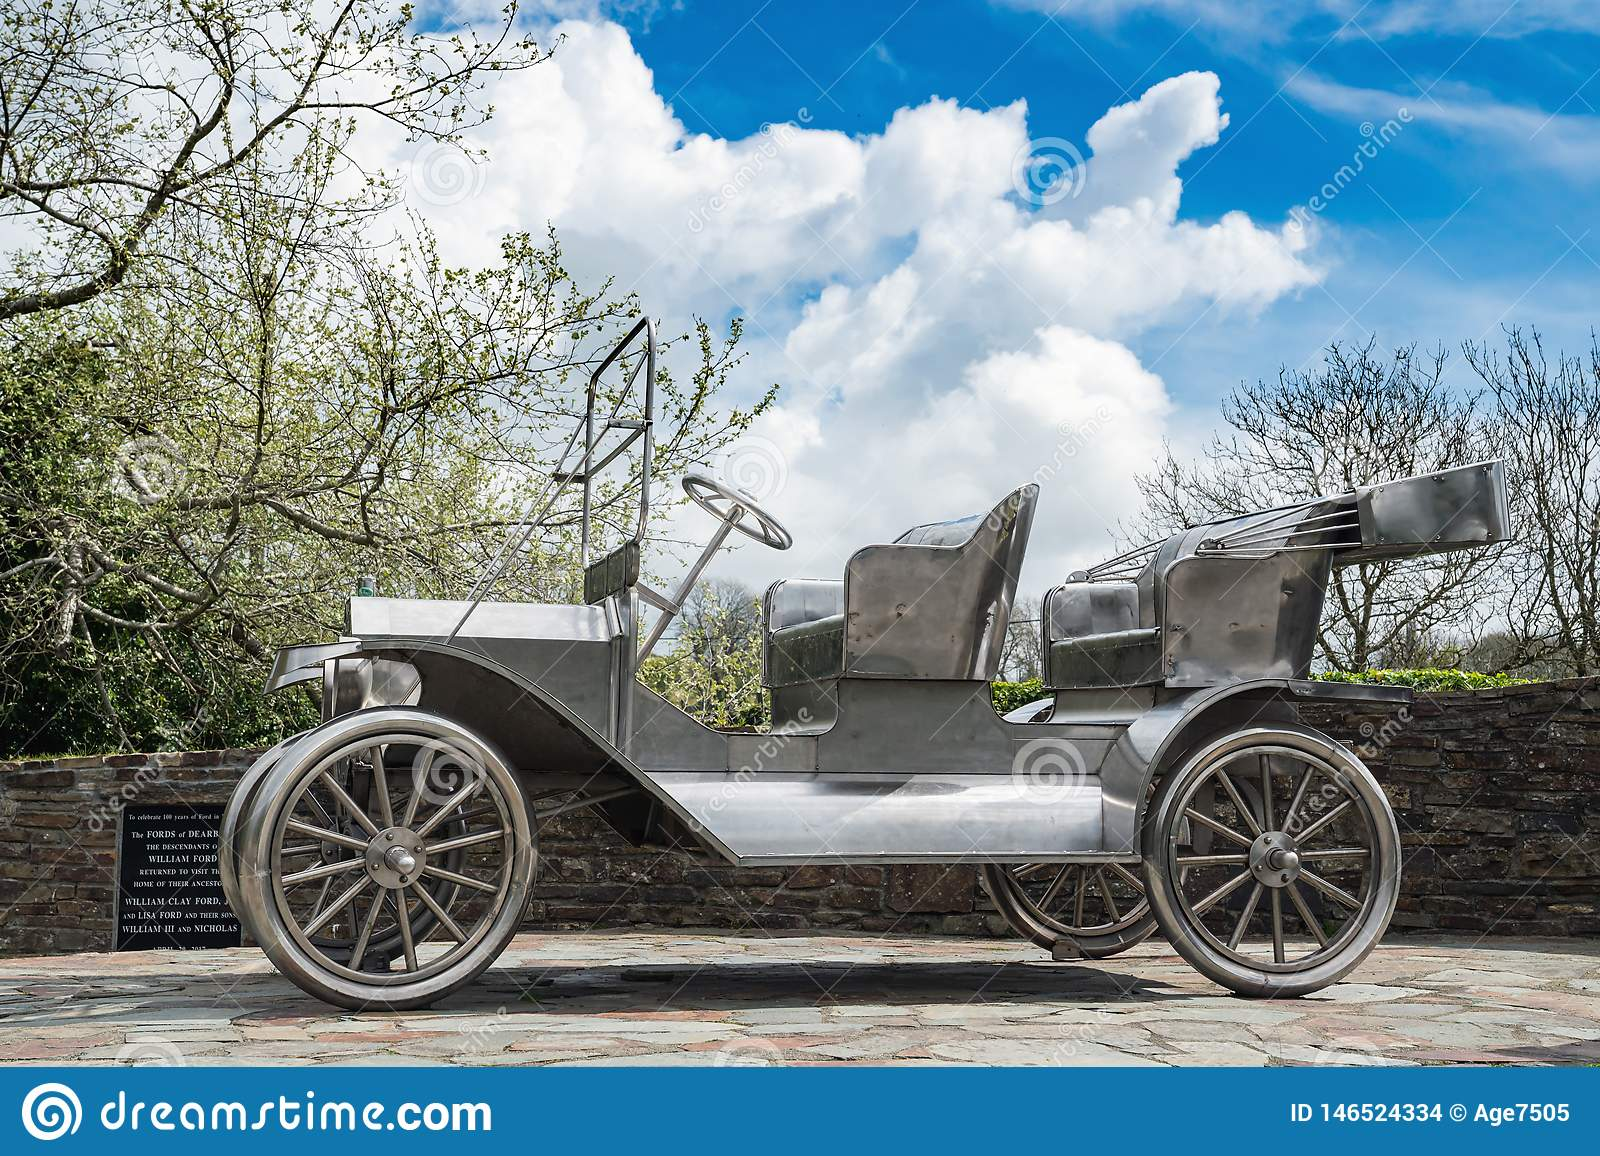 Stainless Steel Ford Model T Monument Editorial Stock Image Image Of Republic Ford 146524334